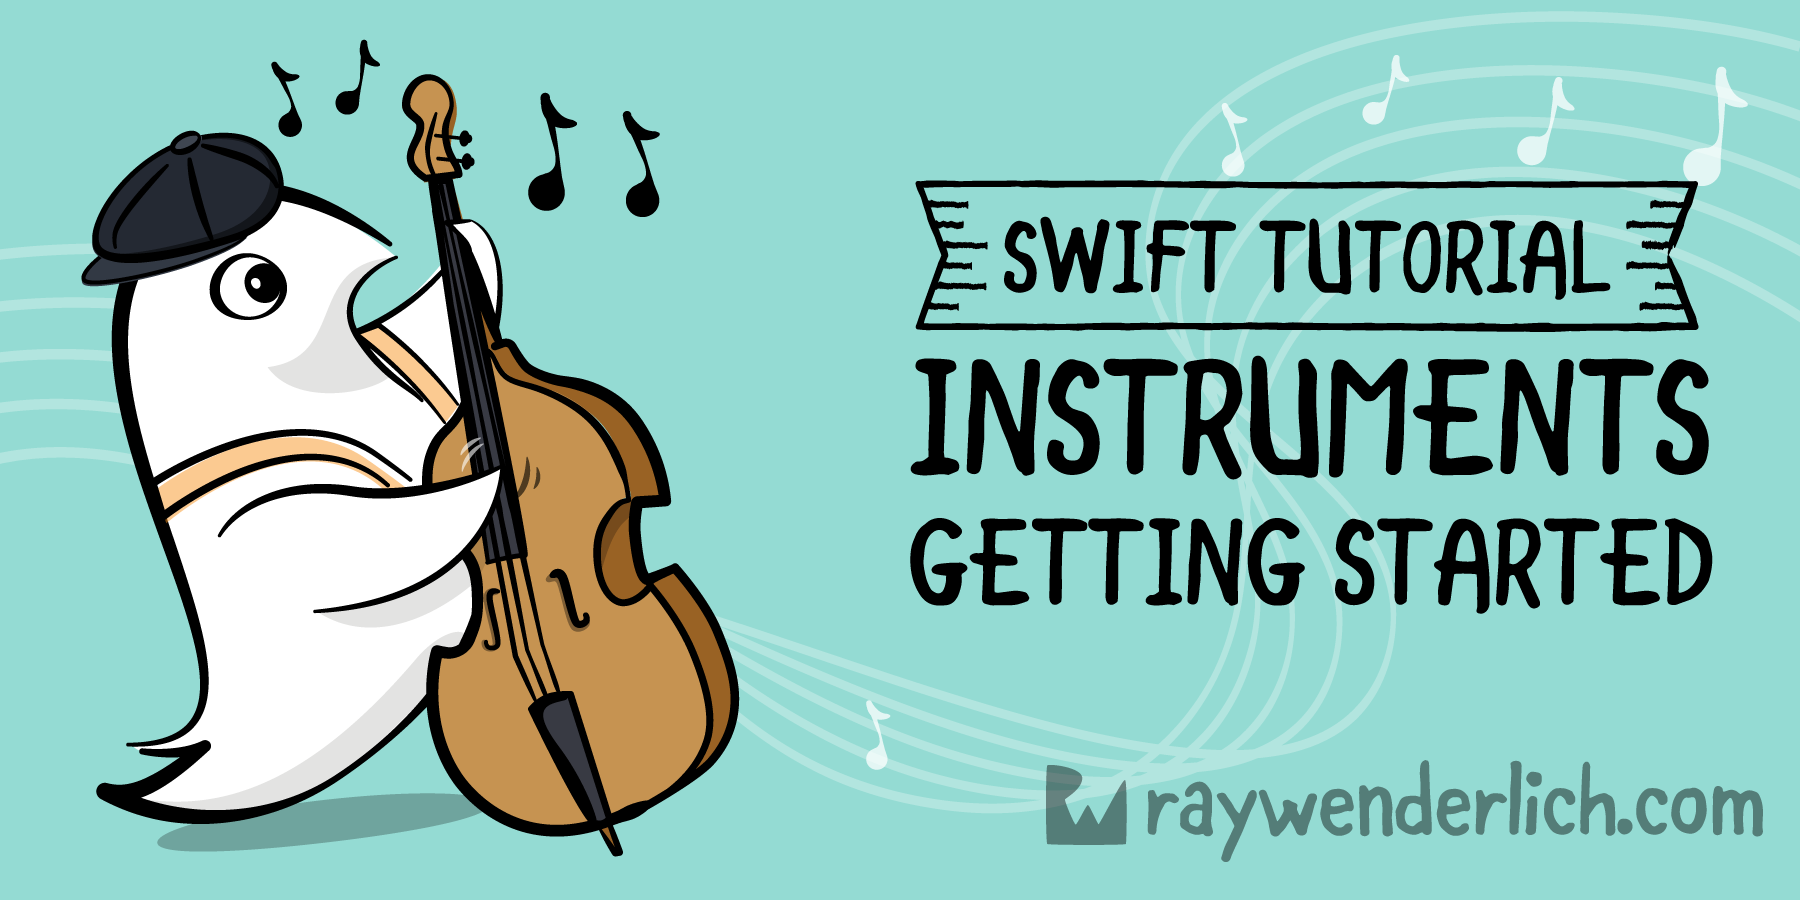 Instruments Tutorial with Swift: Getting Started [FREE]